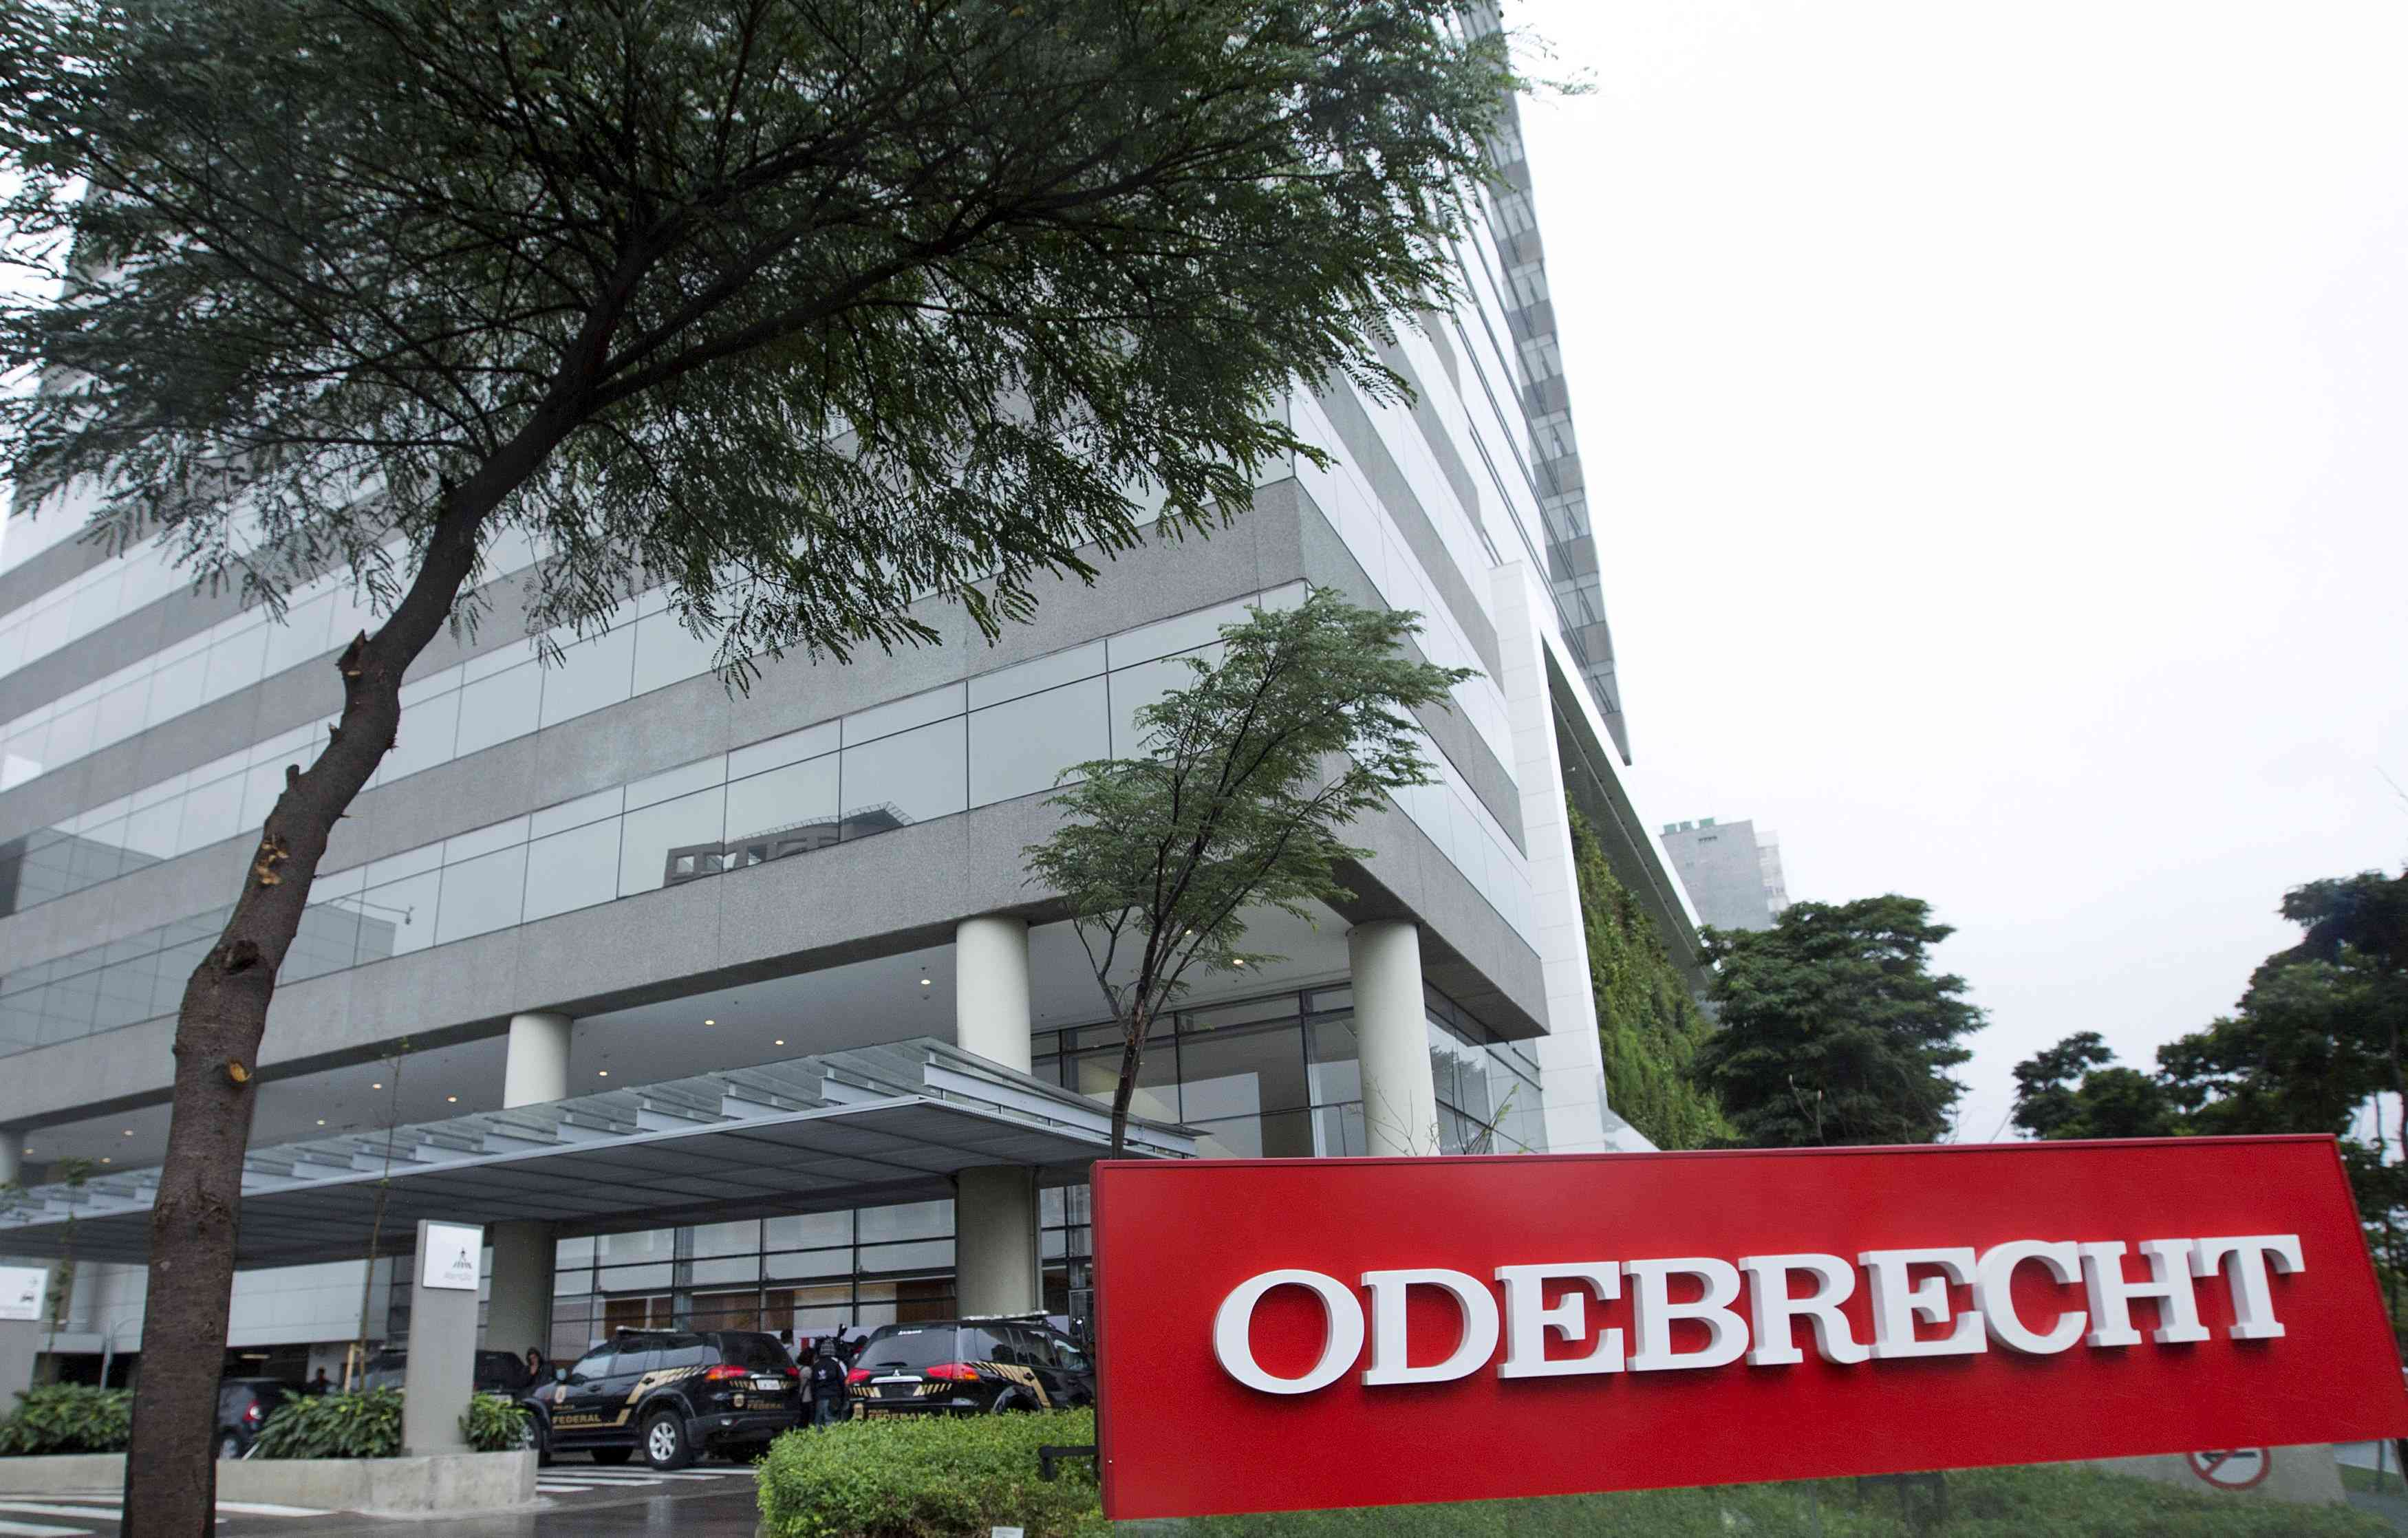 Federal police cars are parked in front of the headquarters of Odebrecht, a large private Brazilian construction firm, in Sao Paulo, Brazil, June 19, 2015. Federal police agent Igor Romario confirmed that Odebrecht CEO Marcelo Odebrecht and Andrade Gutierrez CEO Otavio Marques Azevedo were among 12 people arrested on Friday in a corruption investigation at state-run oil firm Petrobras. Brazilian prosecutor Carlos Fernando dos Santos Lima said at a news conference in the southern city of Curitiba that an investigation into Brazil's two largest construction firms uncovered a sophisticated scheme of illegal acts, including participating in a cartel and fraud in project bidding. REUTERS/Rodrigo Paiva